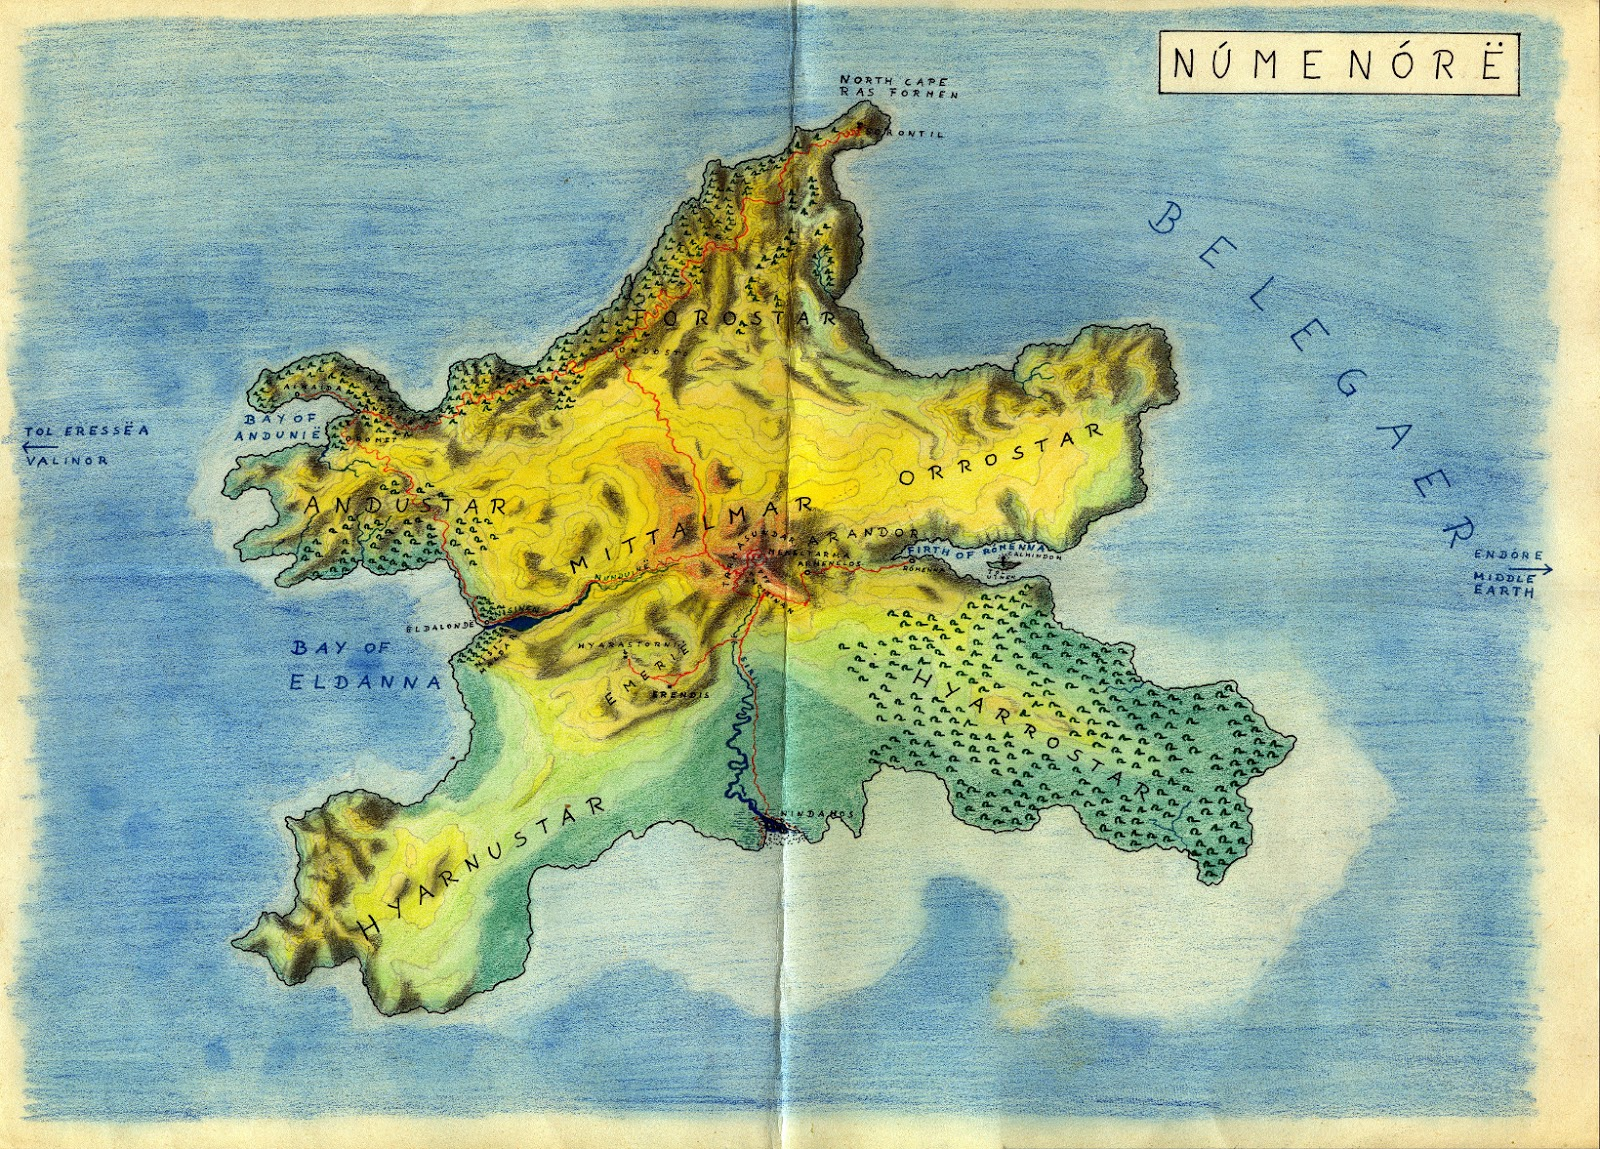 numenor2bgb map of beleriand and